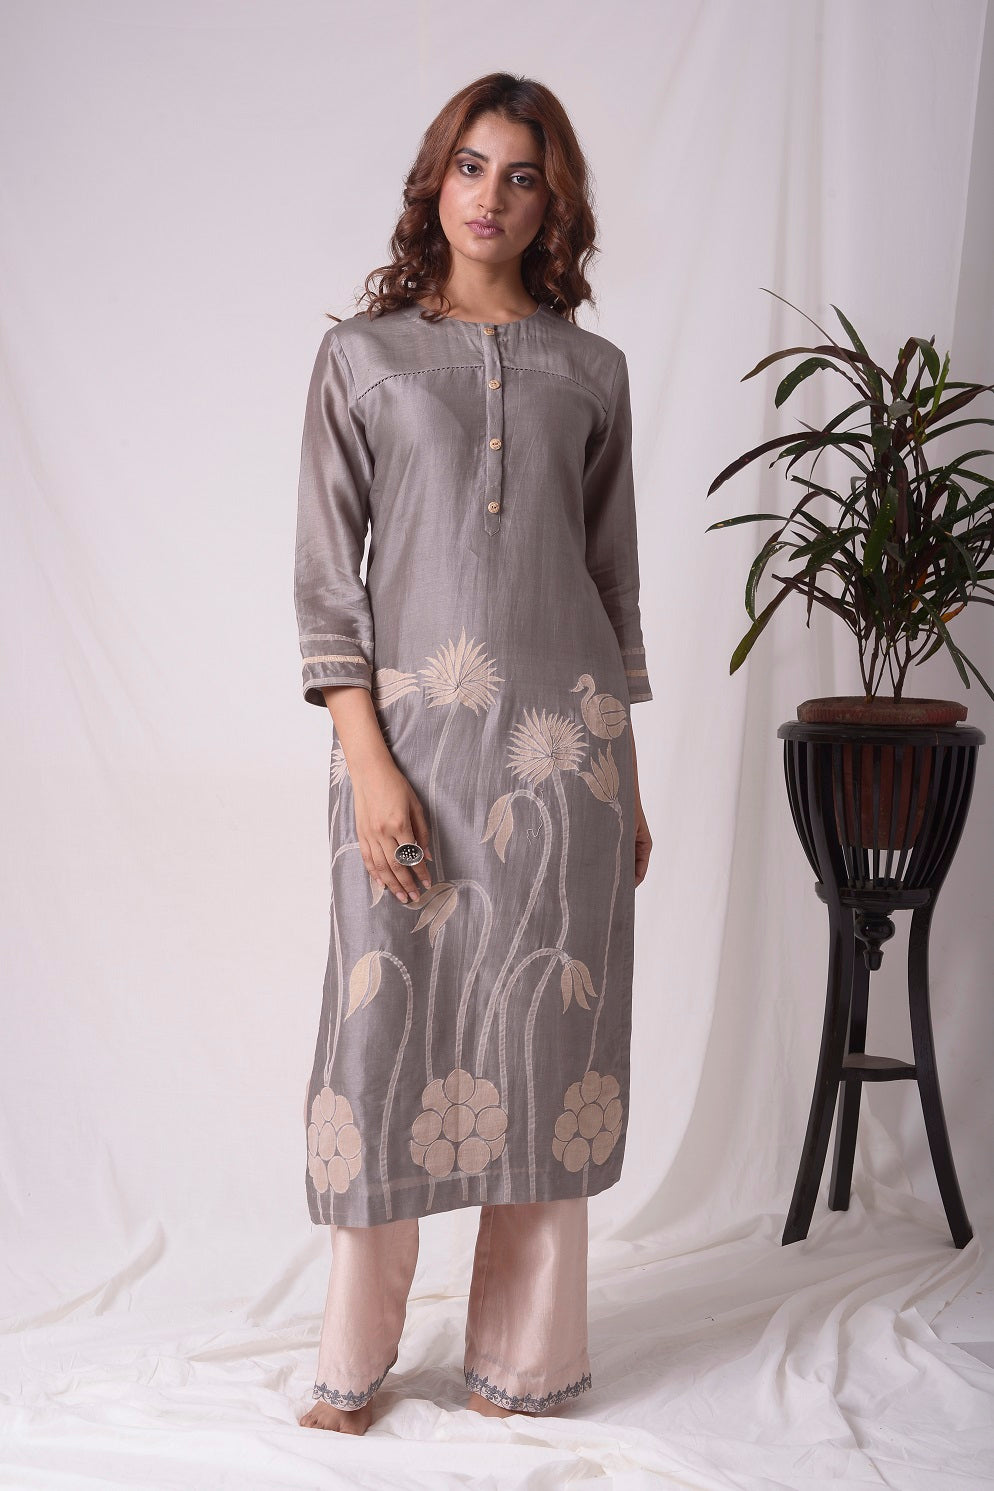 Buy elegant grey chanderi suit online in USA with organza patching. Be the talk of parties and weddings with exquisite designer dresses, sharara suits, Anarkali suits, salwar suits from Pure Elegance Indian clothing store in USA. Shop online now.-full view